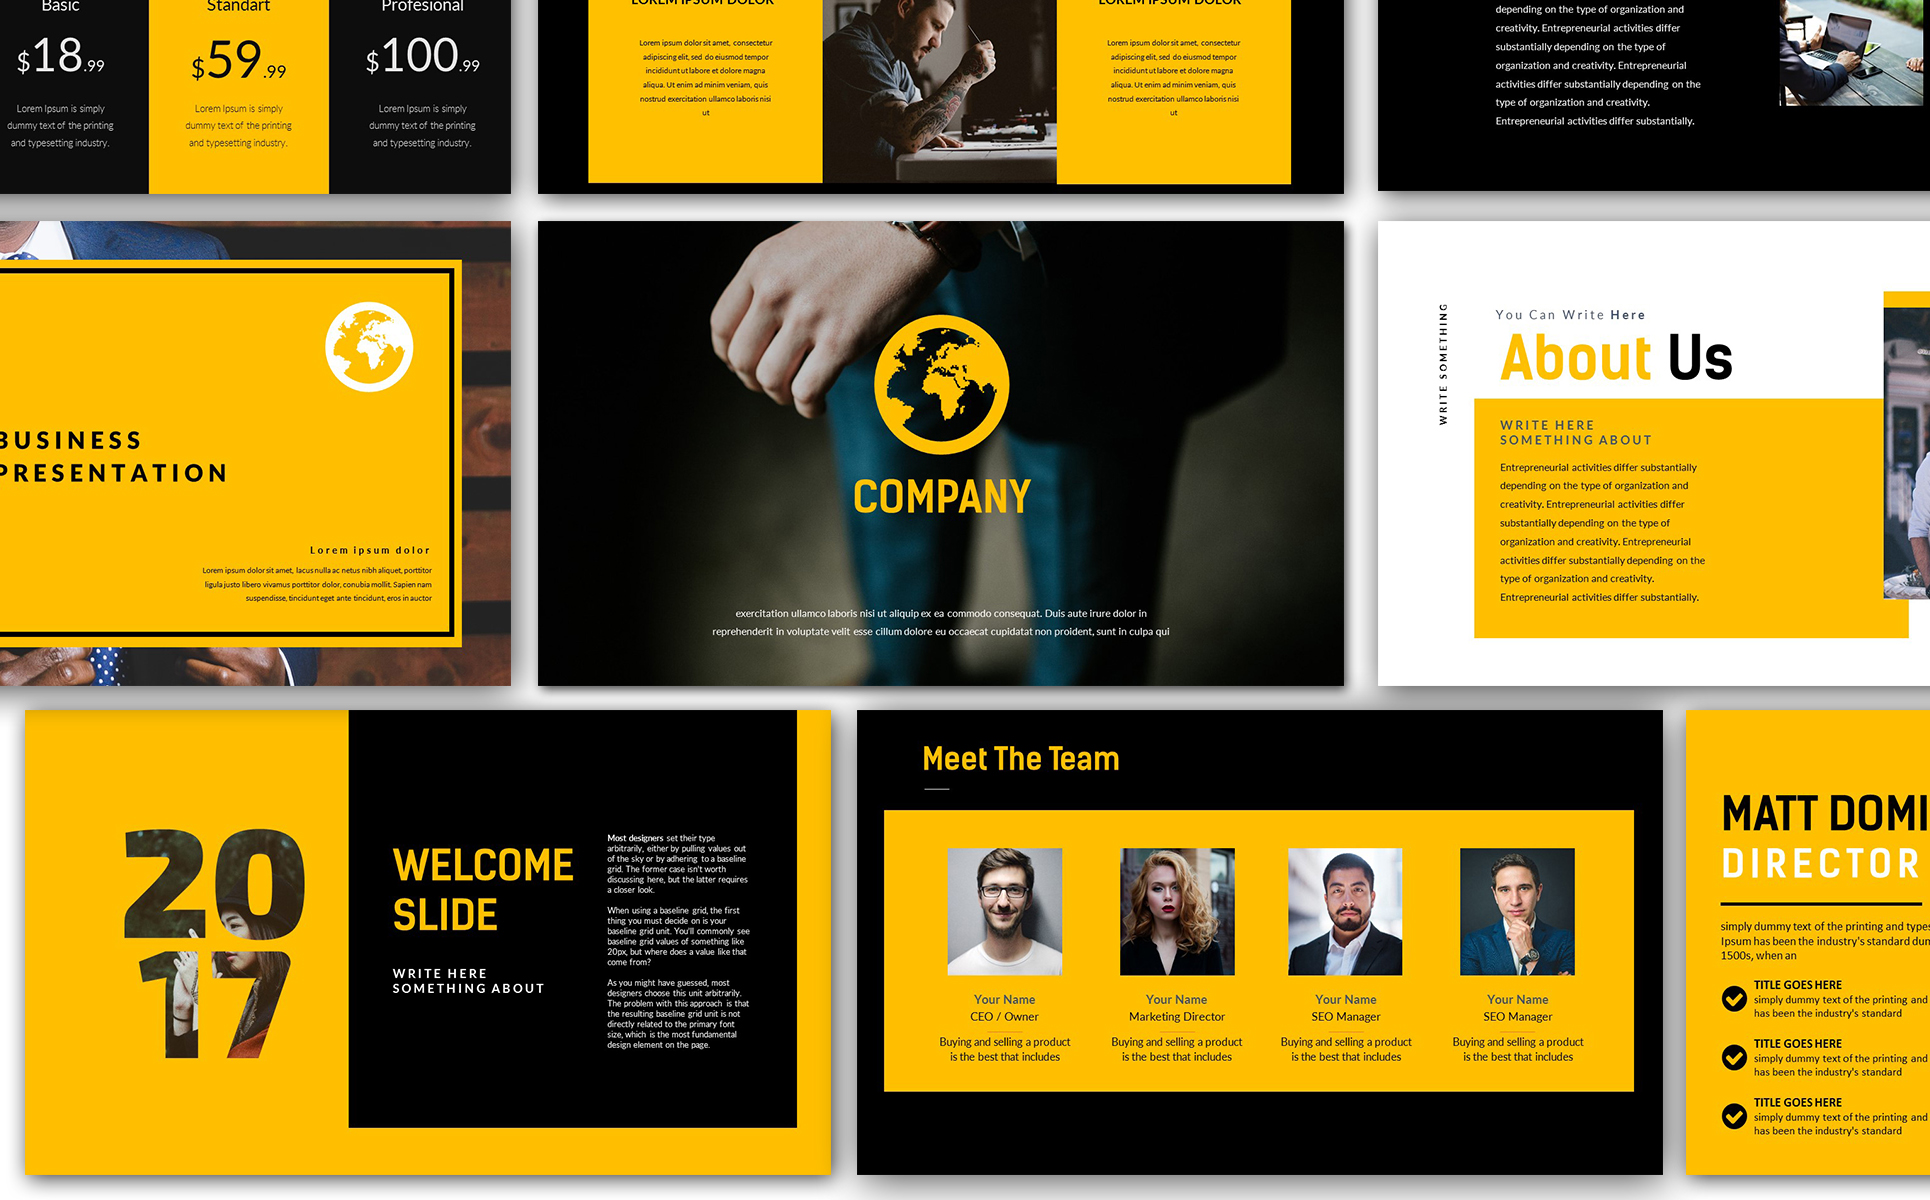 Yellow company business presentation powerpoint template 66837 yellow company business presentation powerpoint template big screenshot flashek Images